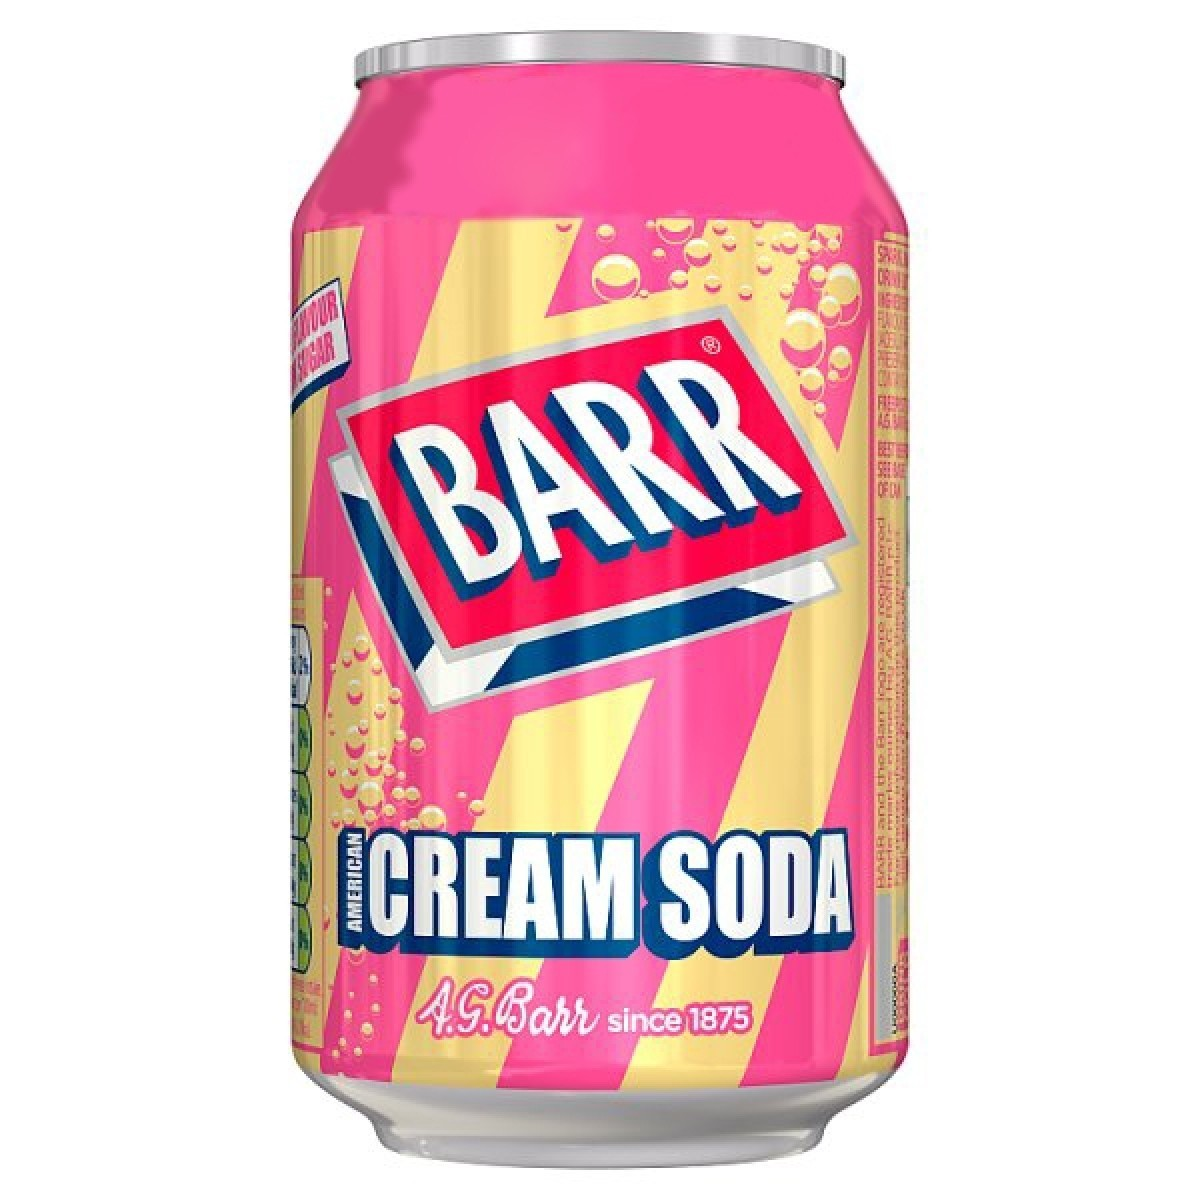 BARR Cream Soda 330ml 24pk image